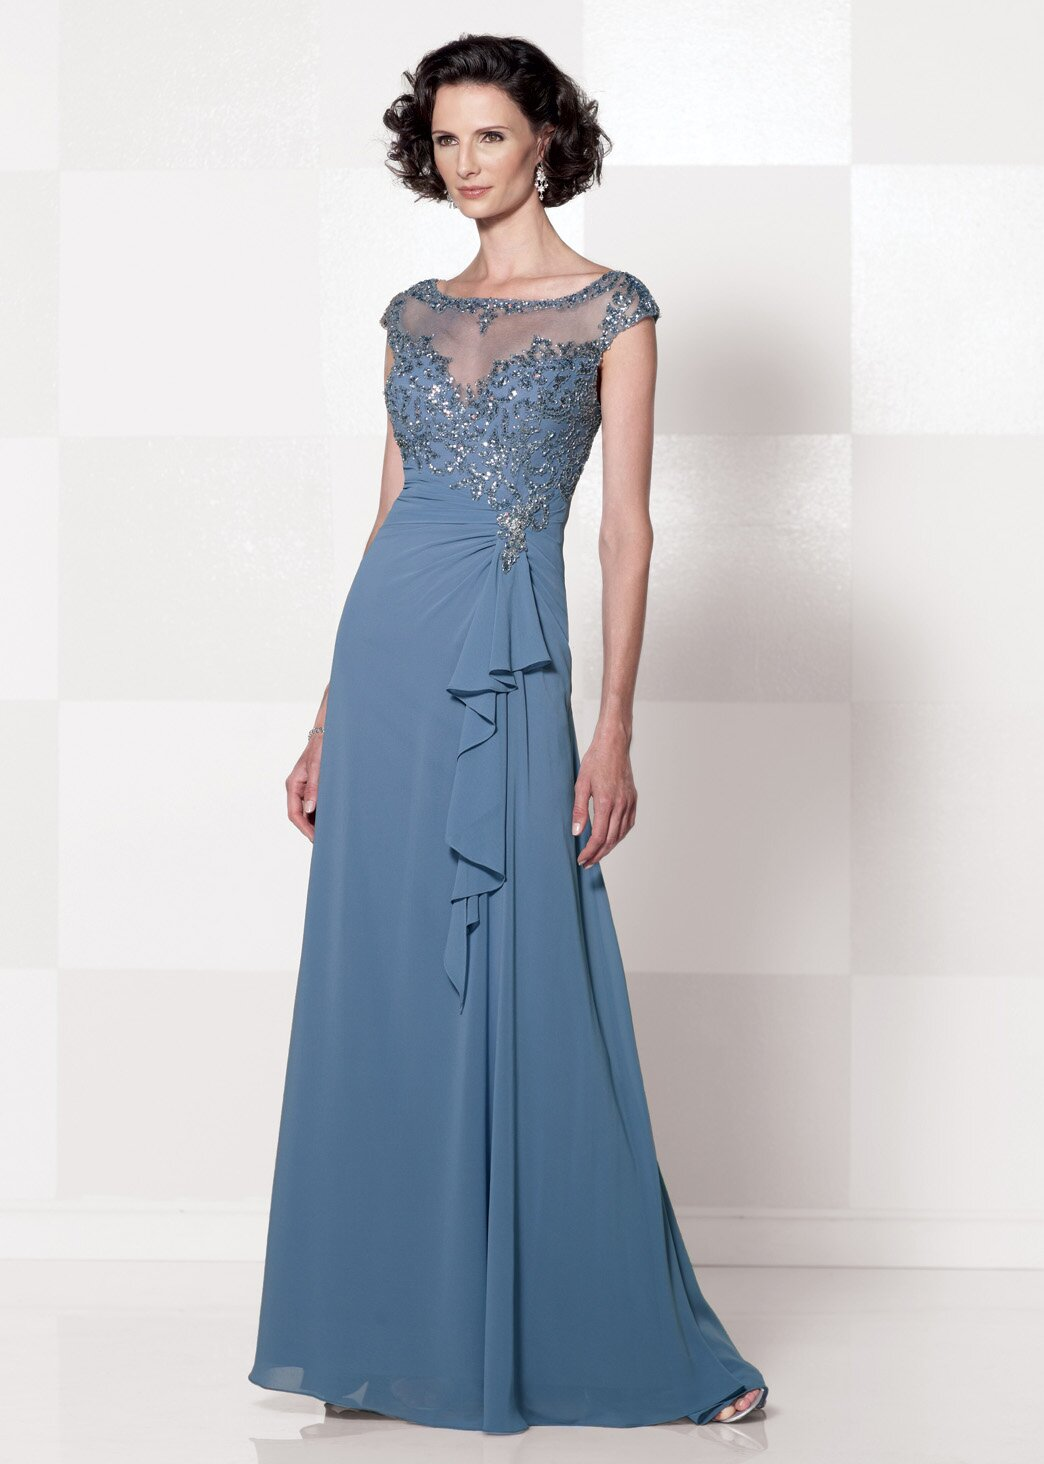 Outdoor Wedding Dresses For Mother Of The Groom Pictures Ideas